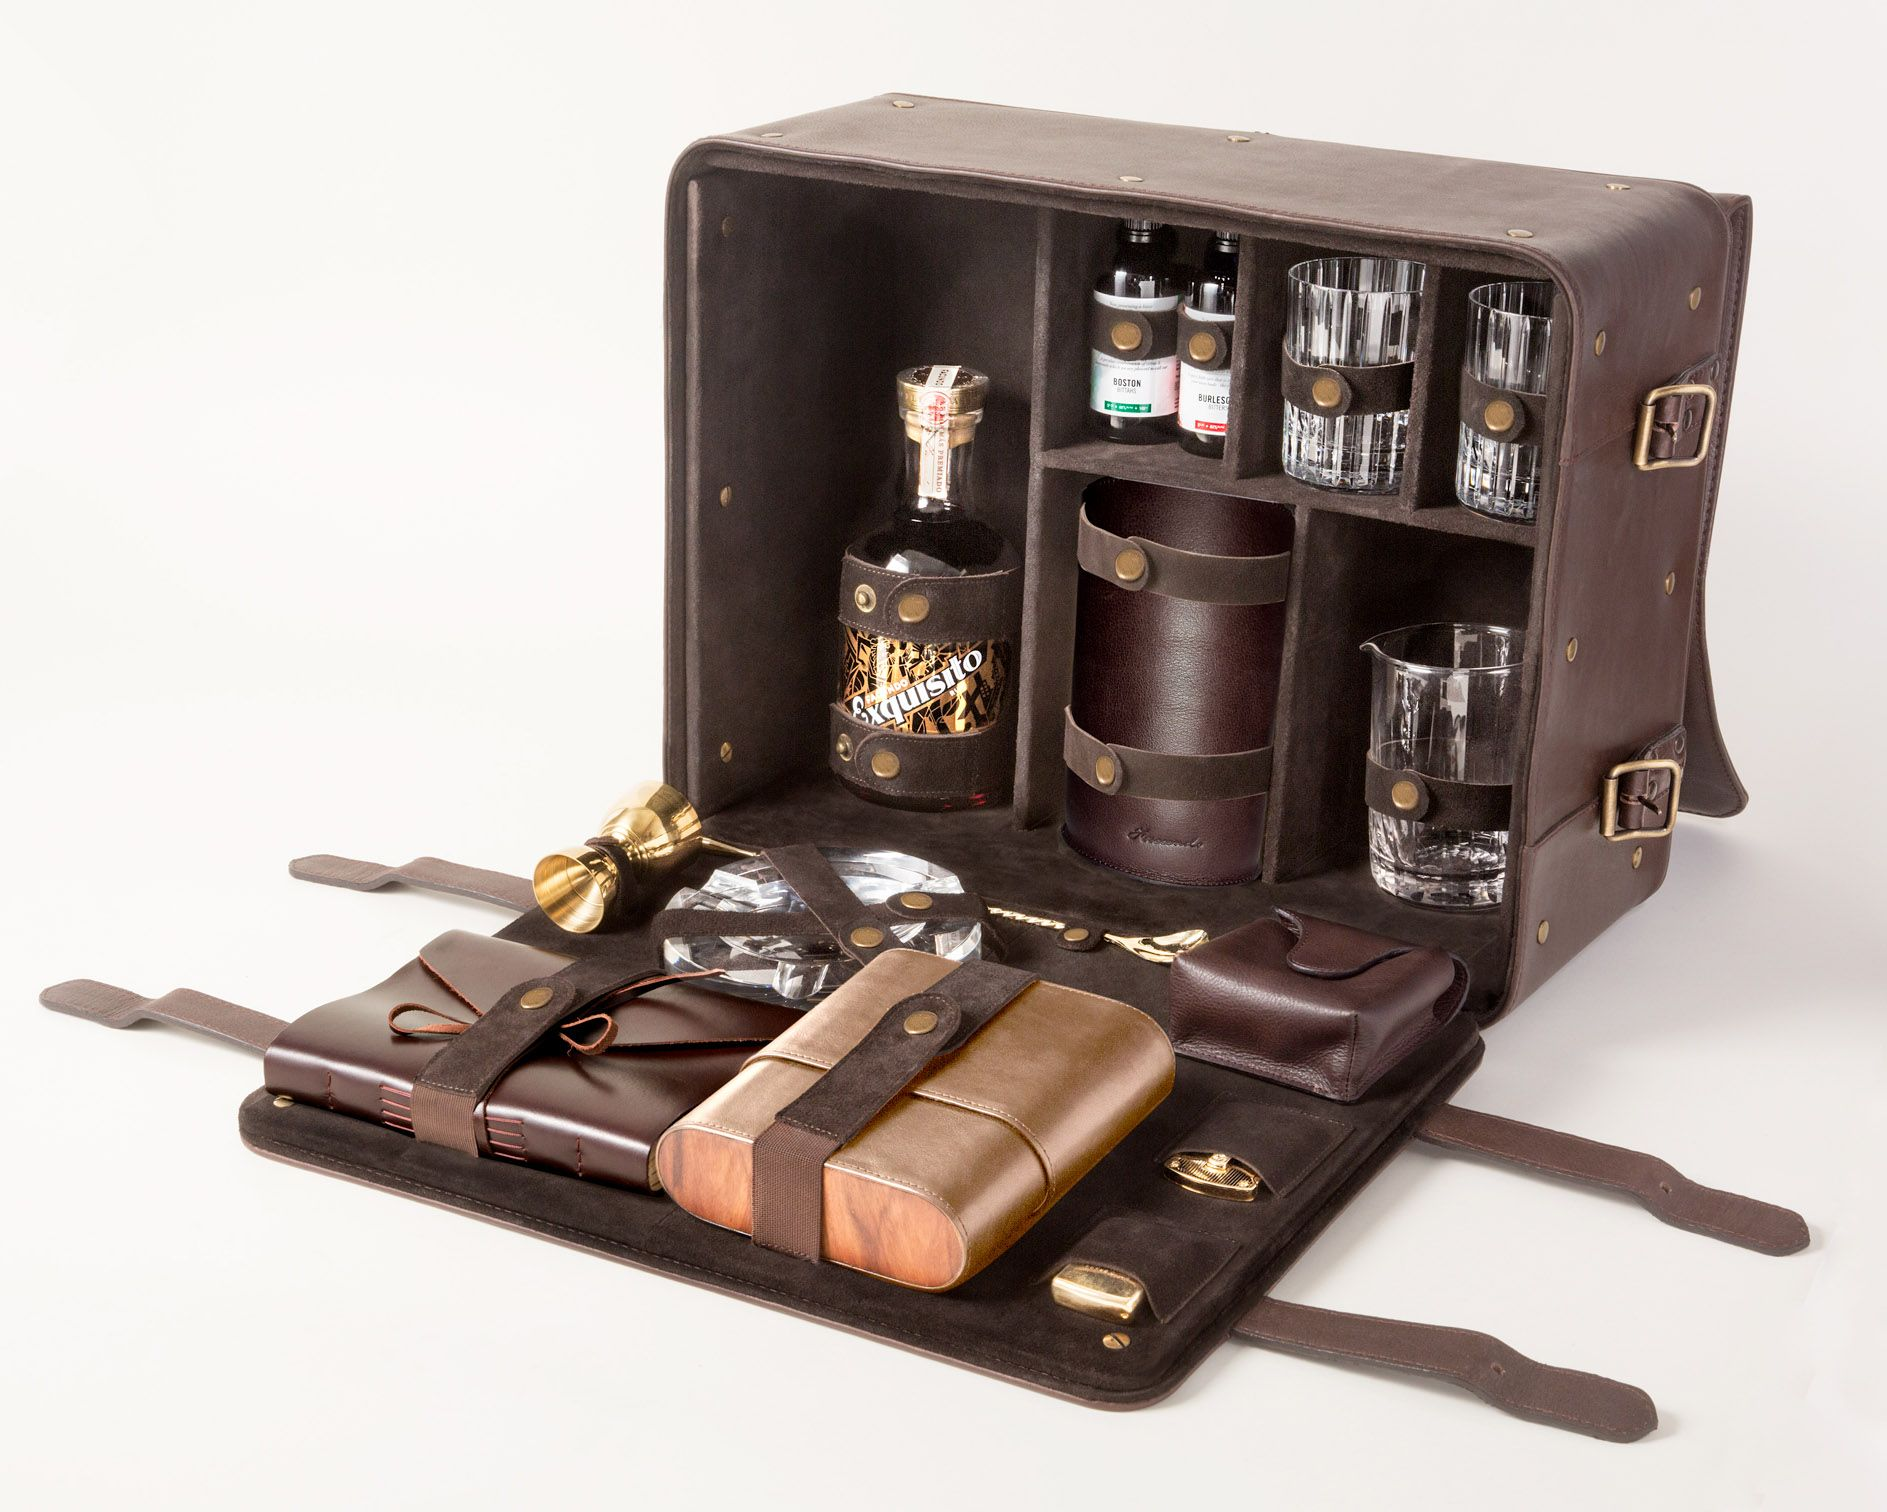 5 000 facundo elevated holiday gift set brings on the rum